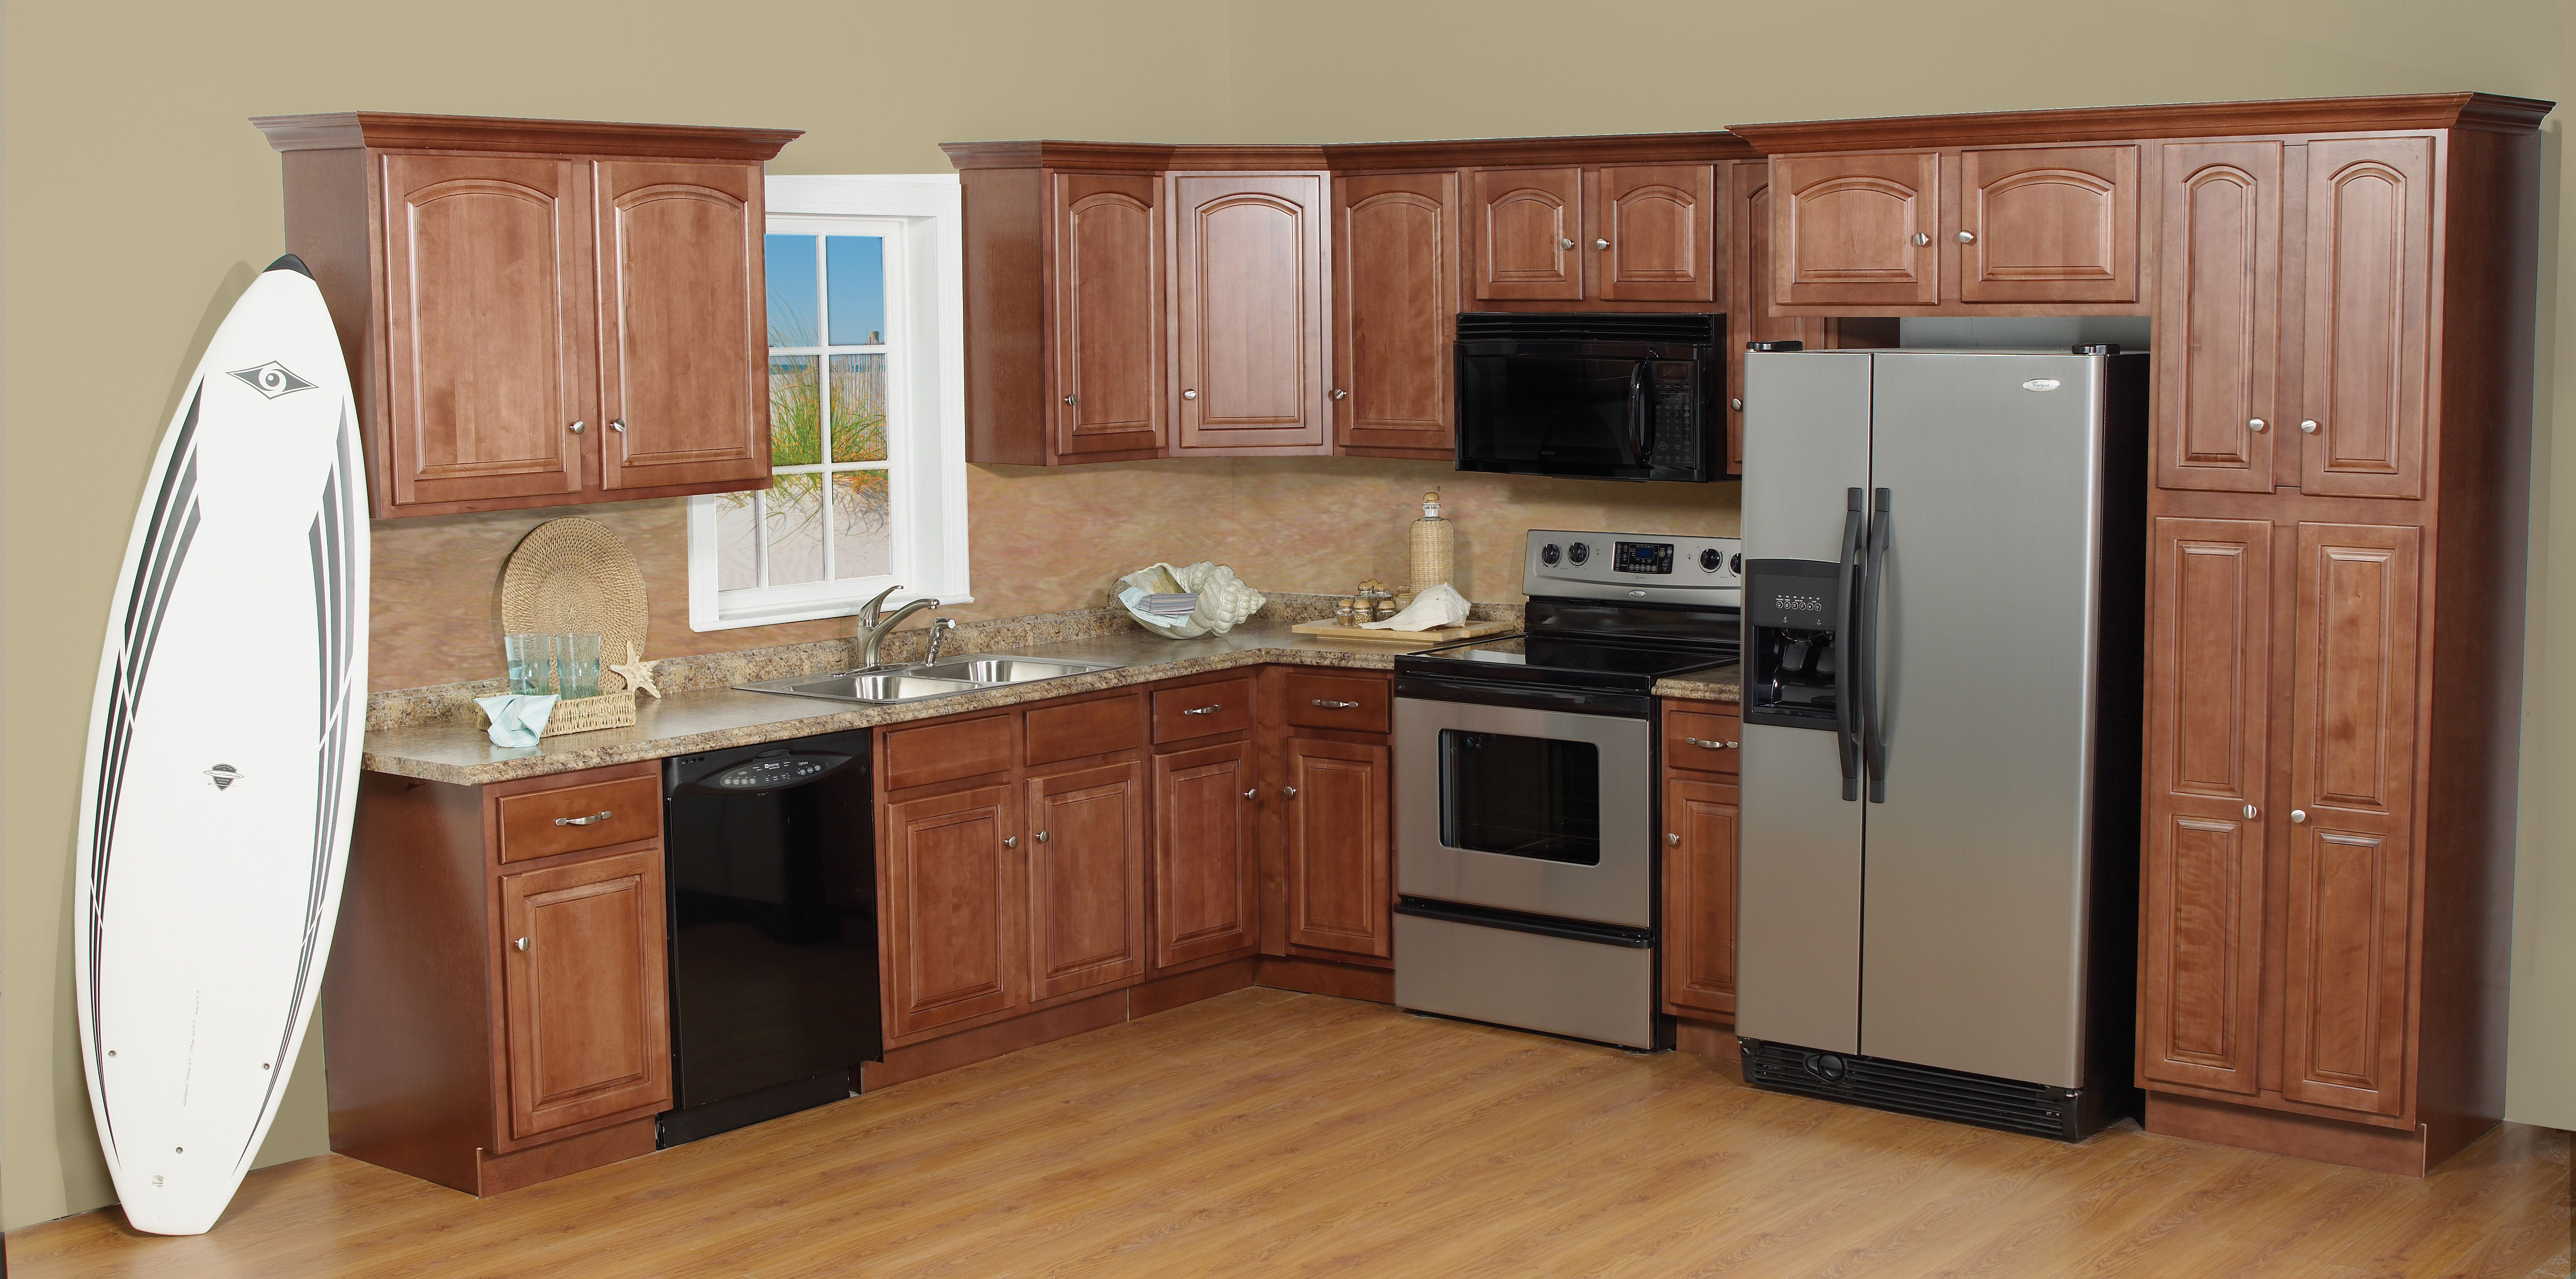 Window under kitchen cabinets   stop construction supplies cabinets  granite counter tops